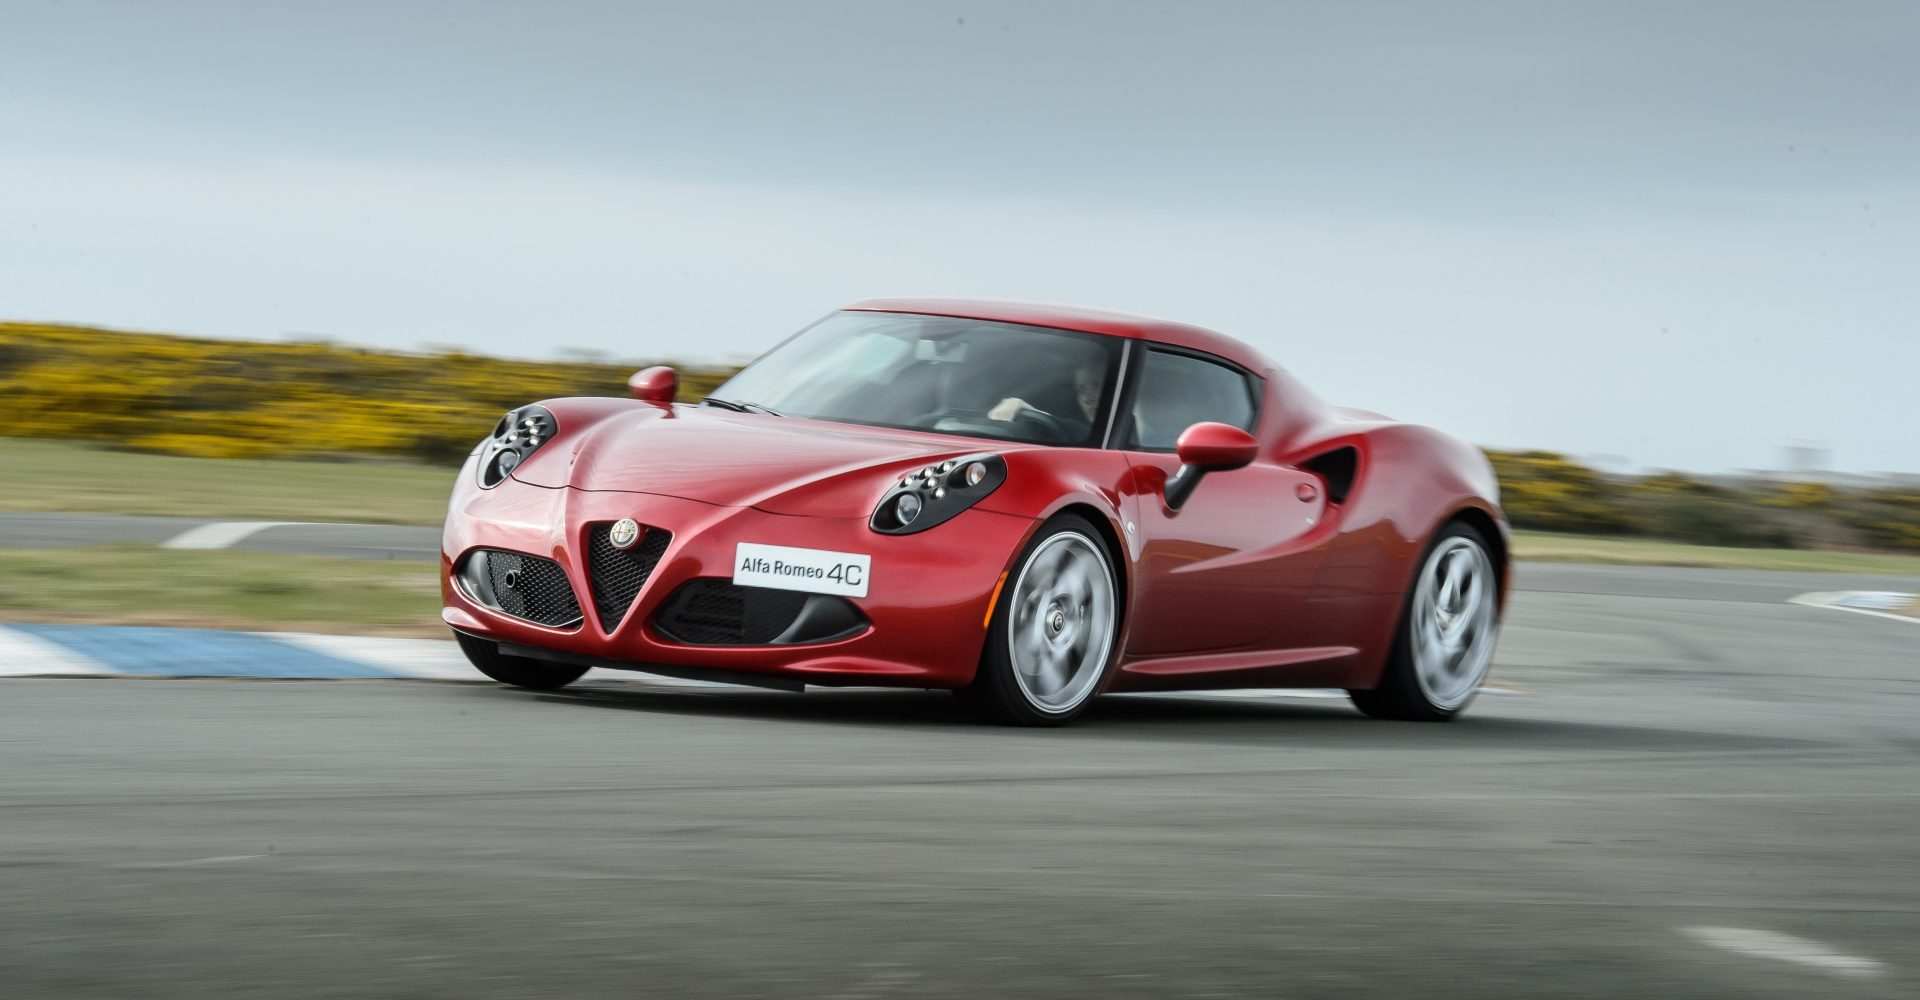 Alfa Romeo 4C reportedly axed from line-up